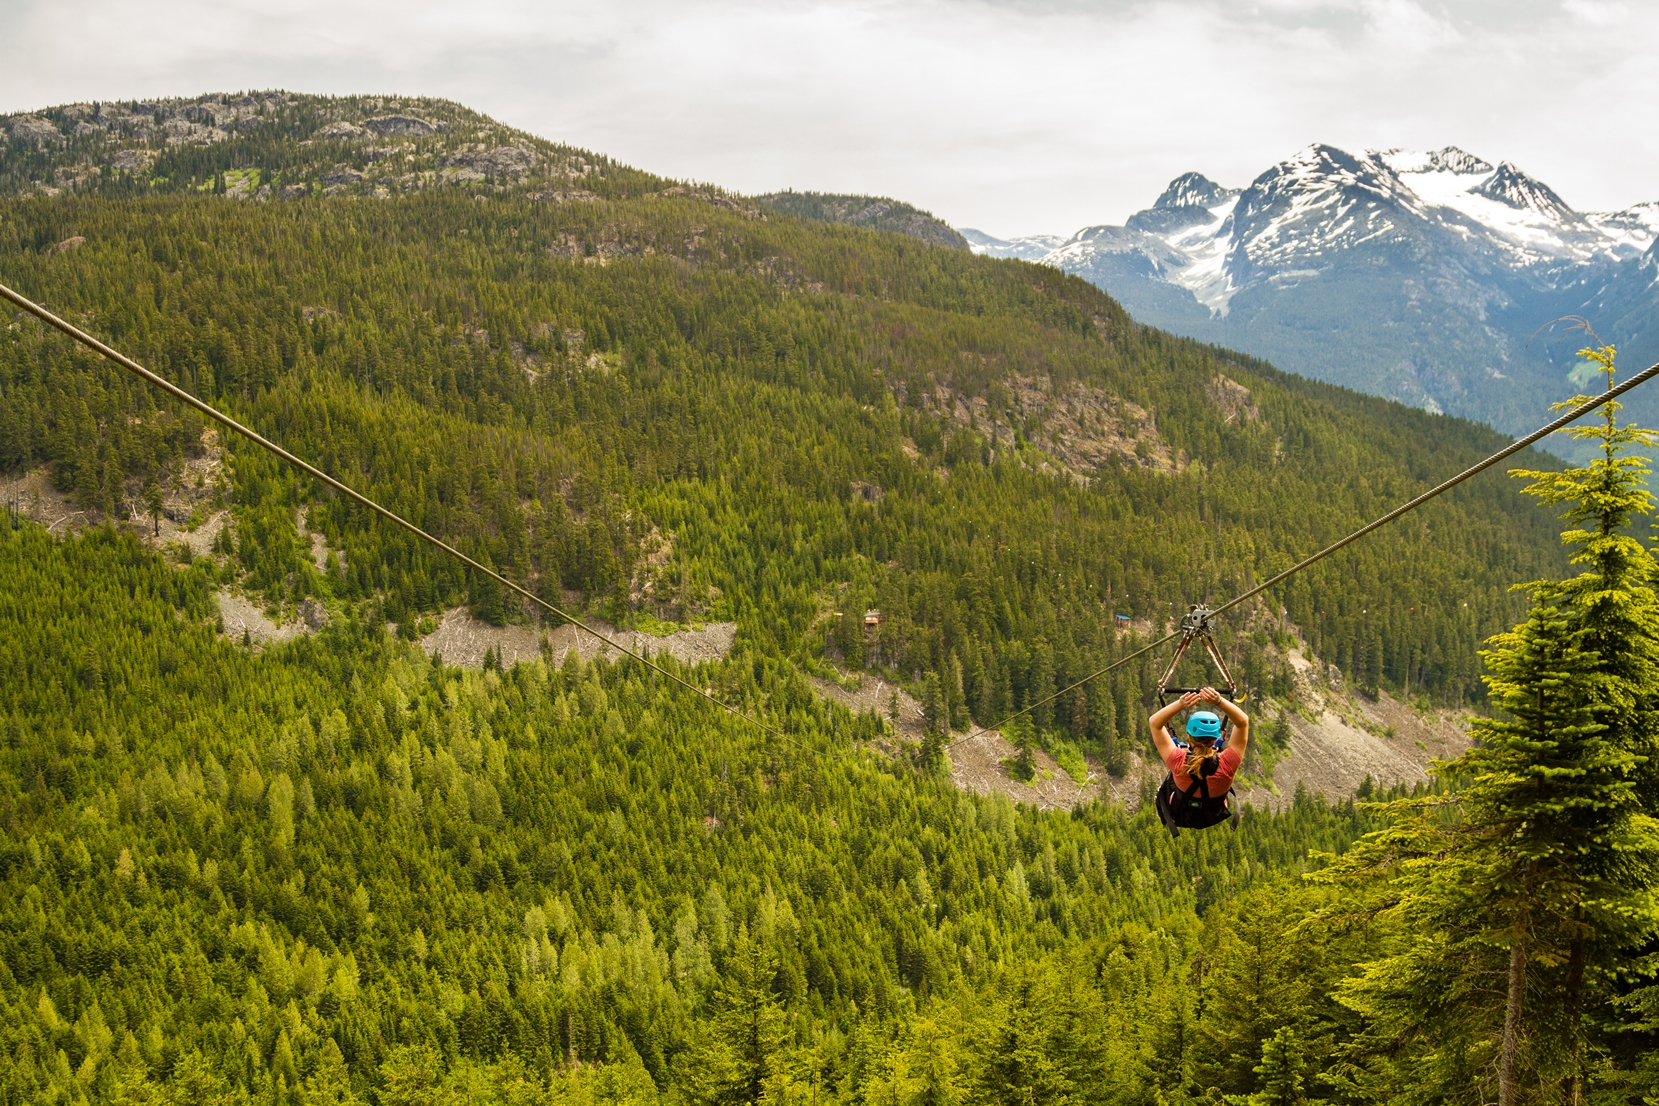 Ziplining across Whistler's peaks is a thrilling way to explore the dramatic beauty of the area.